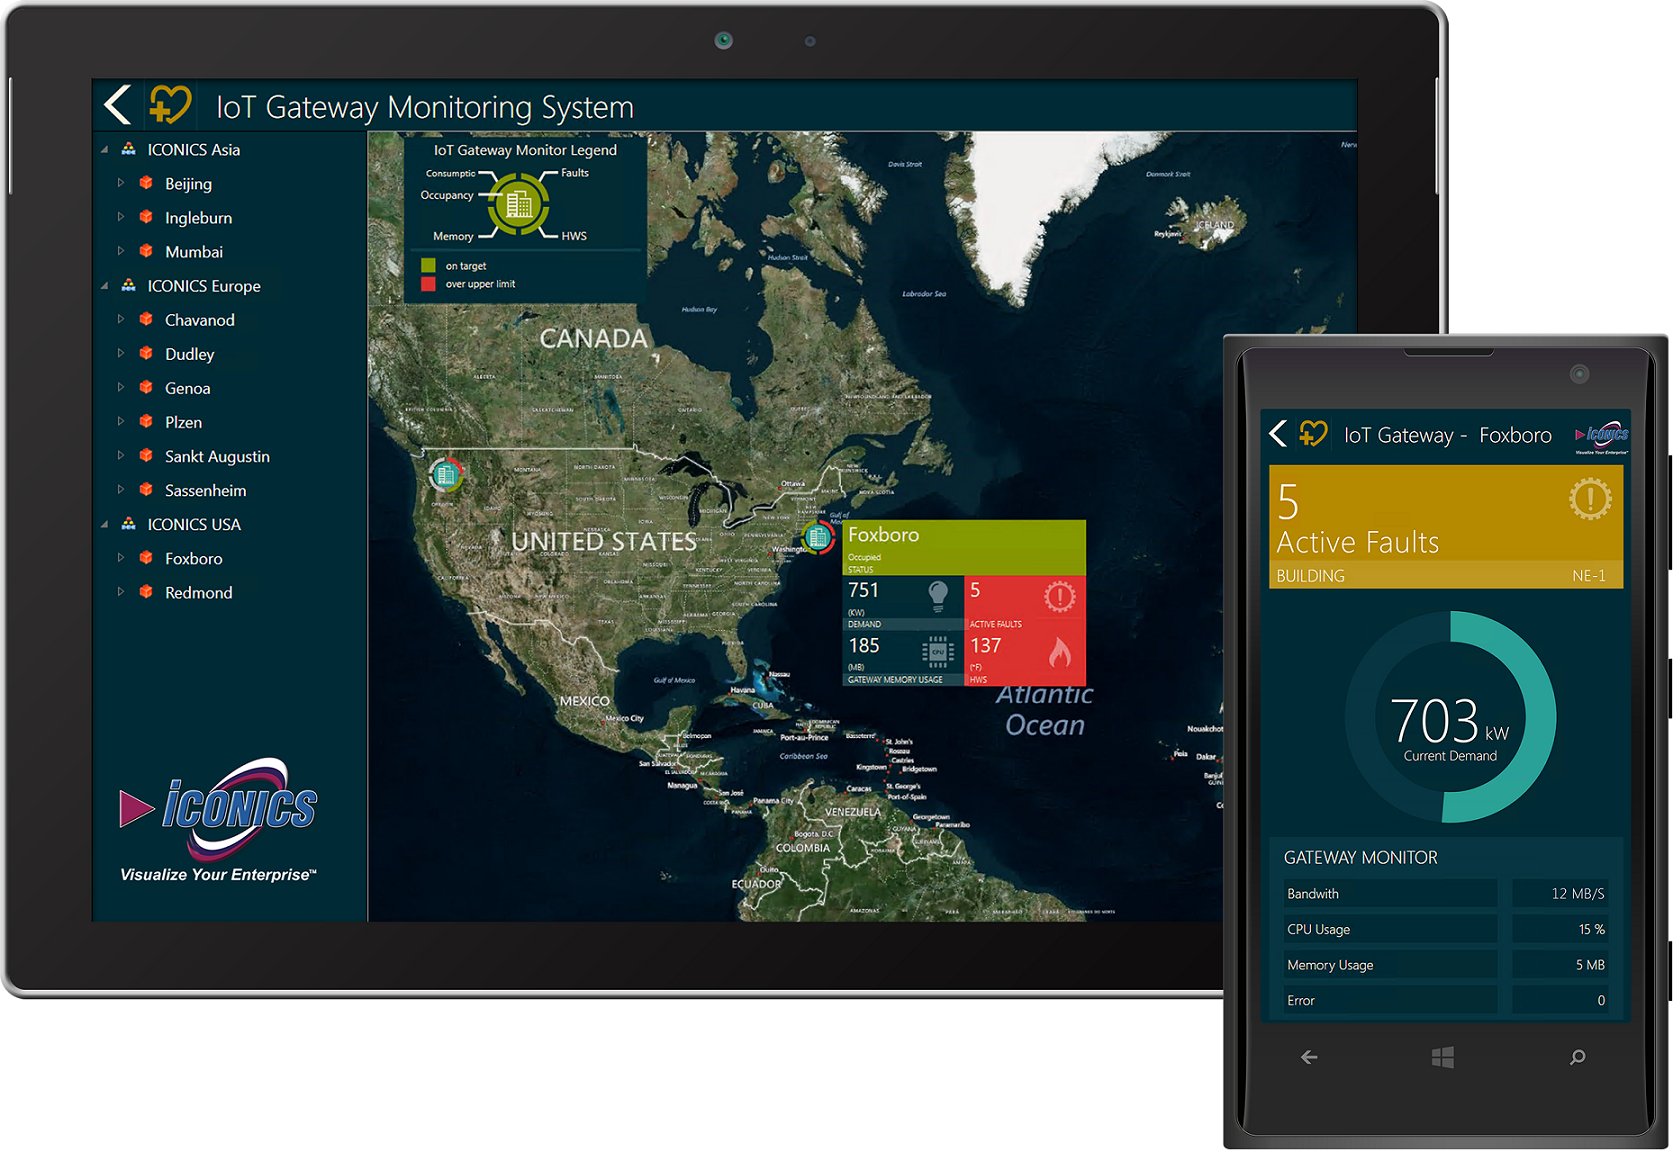 IoT Gateway Suite: Remote Cloud Monitoring and Analytics